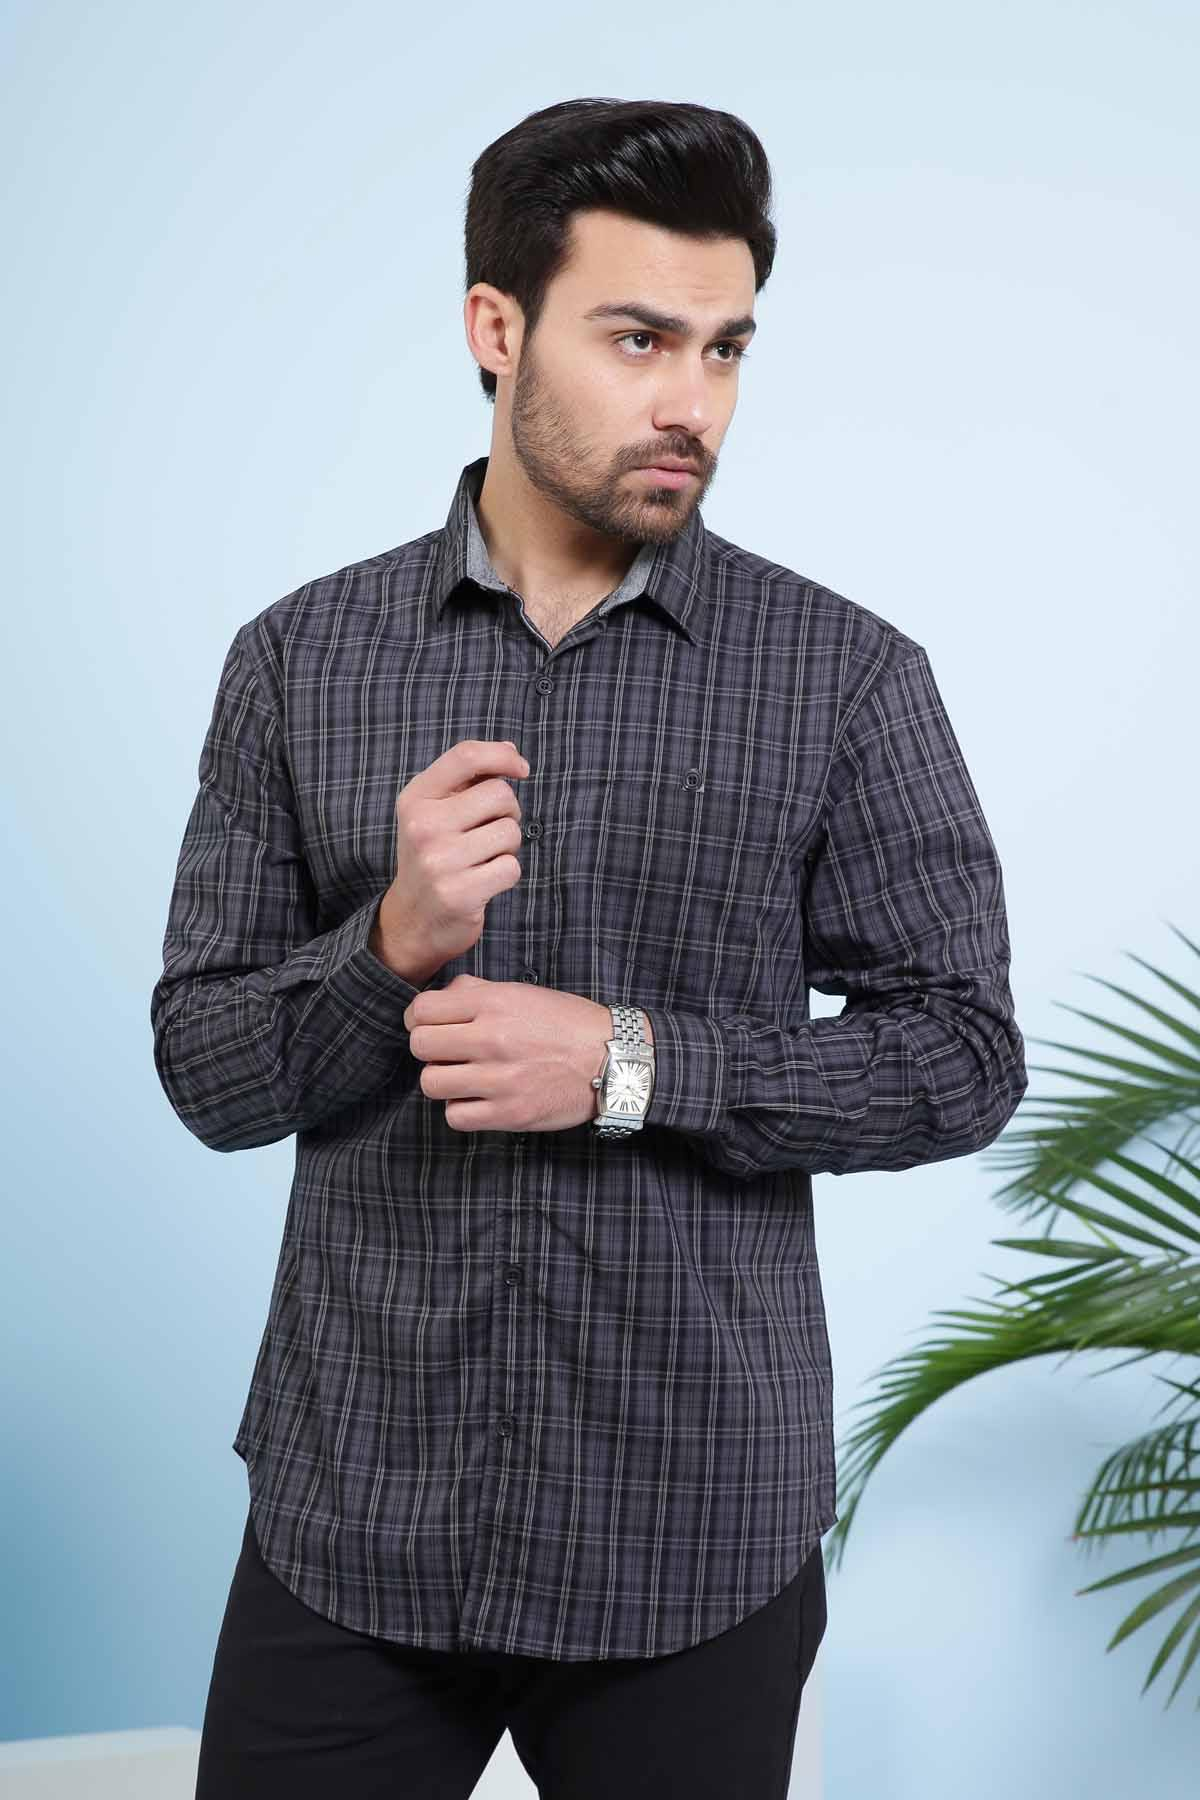 CASUAL SHIRT FULL SLEEVE SLIM FIT CHARCOAL GREY - Charcoal -